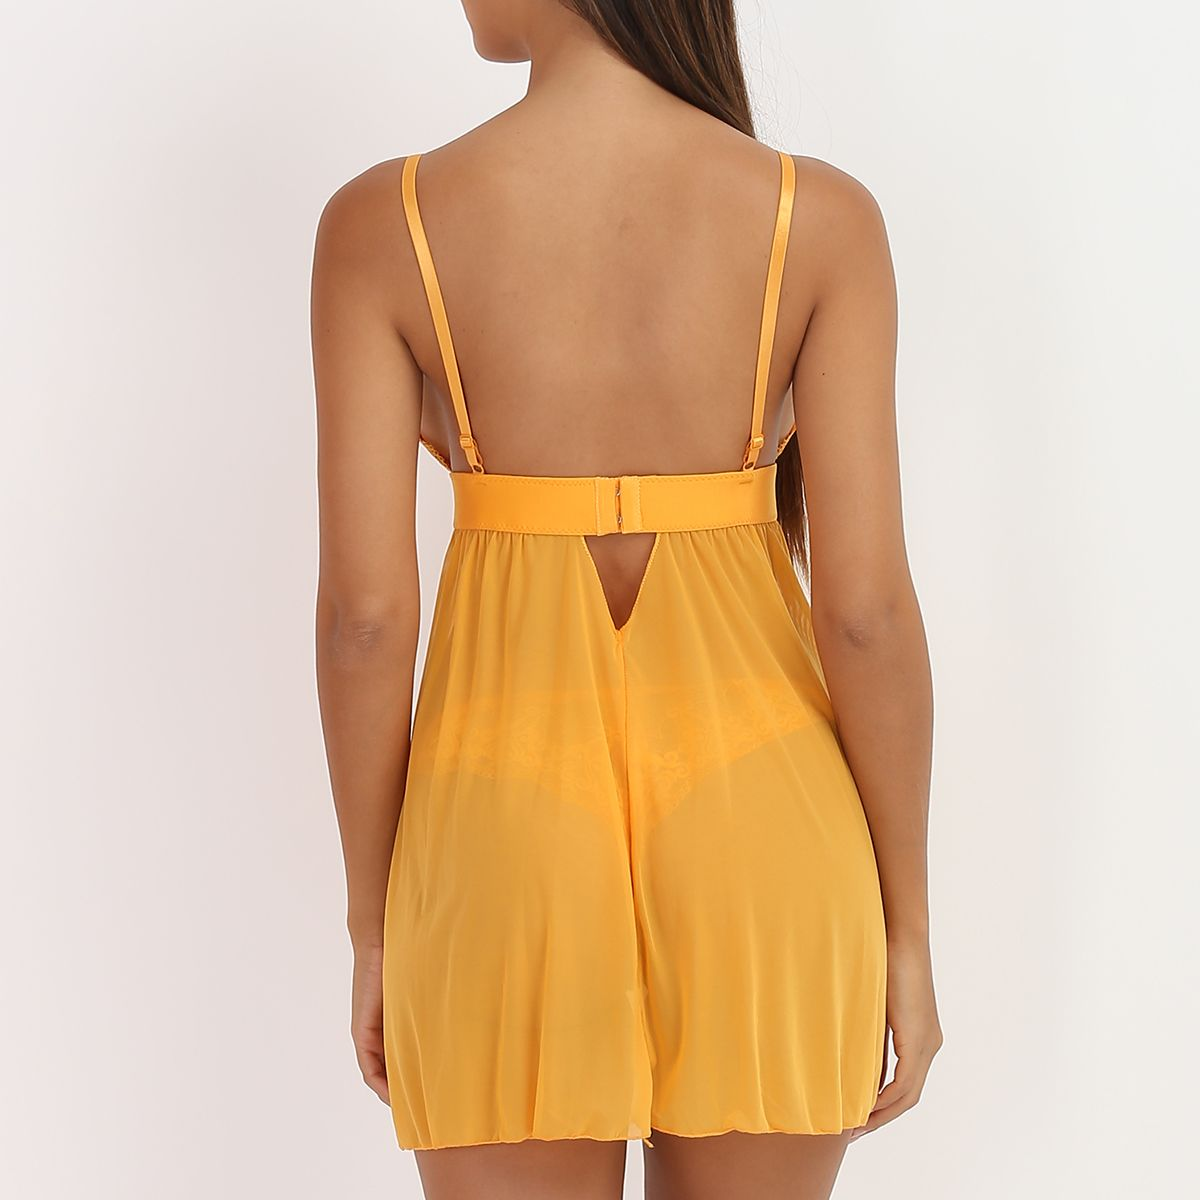 Ensemble moutarde nuisette triangle et string